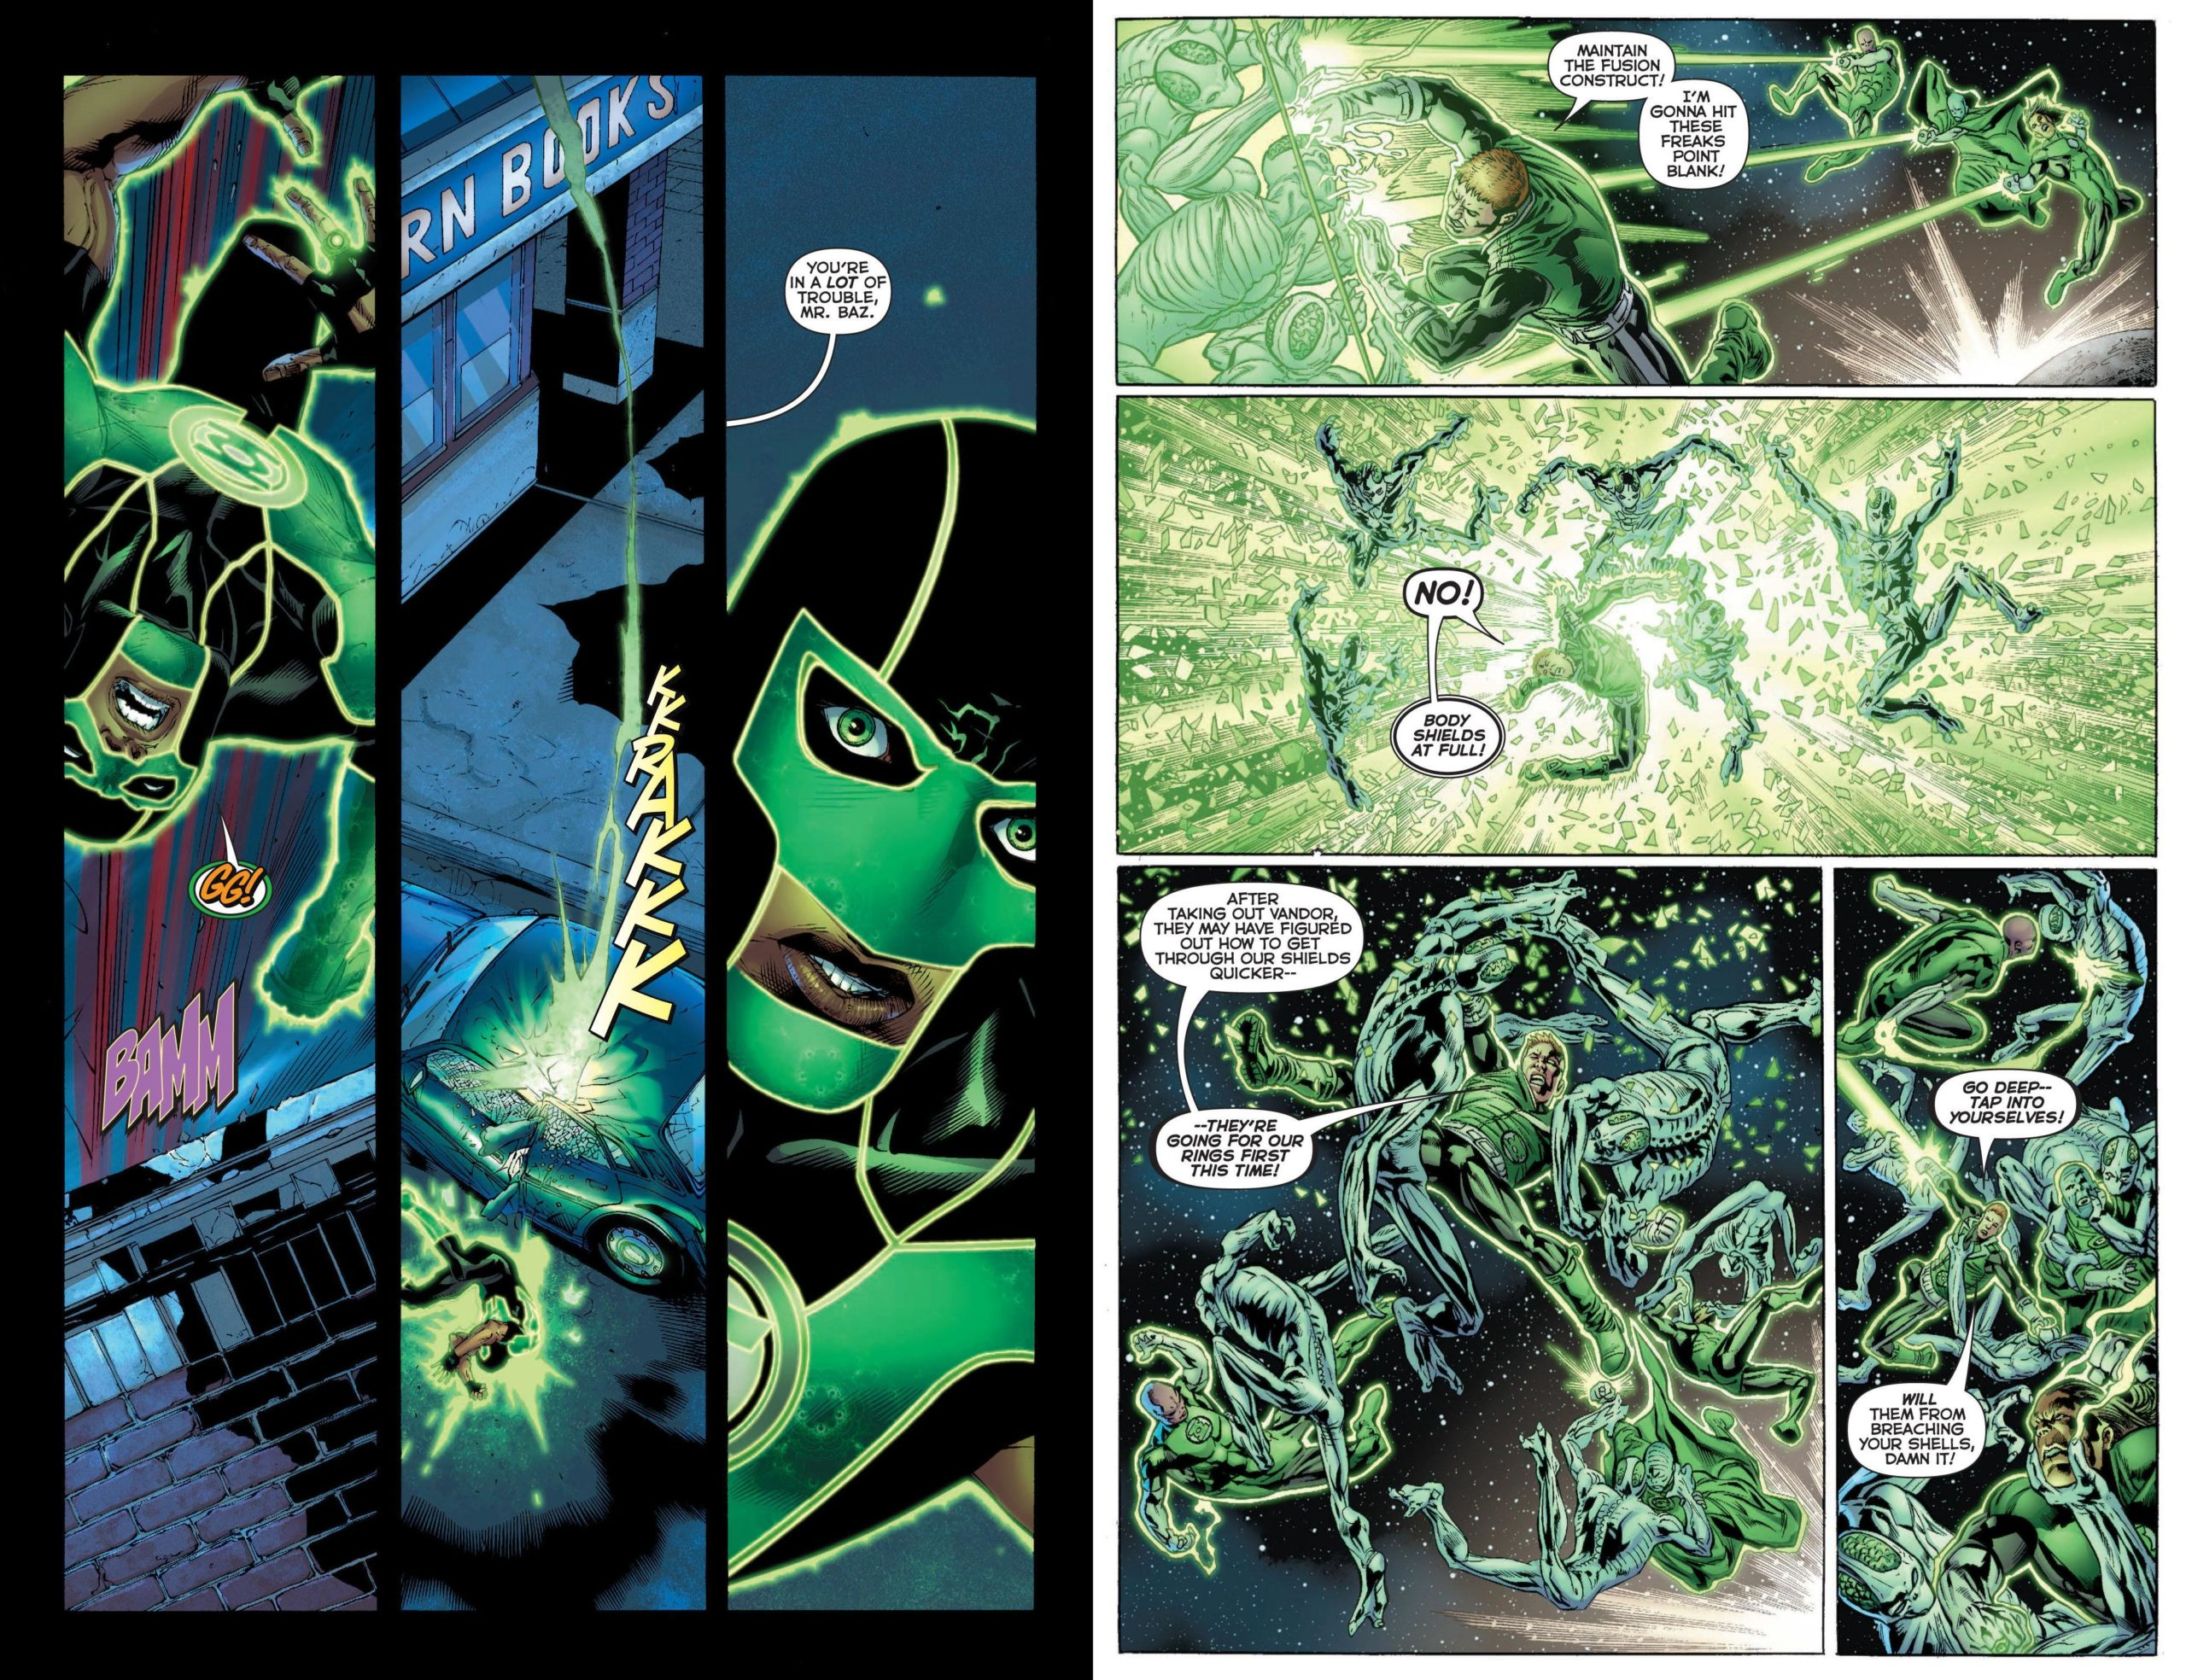 Green Lantern - Rise of the Third Army review